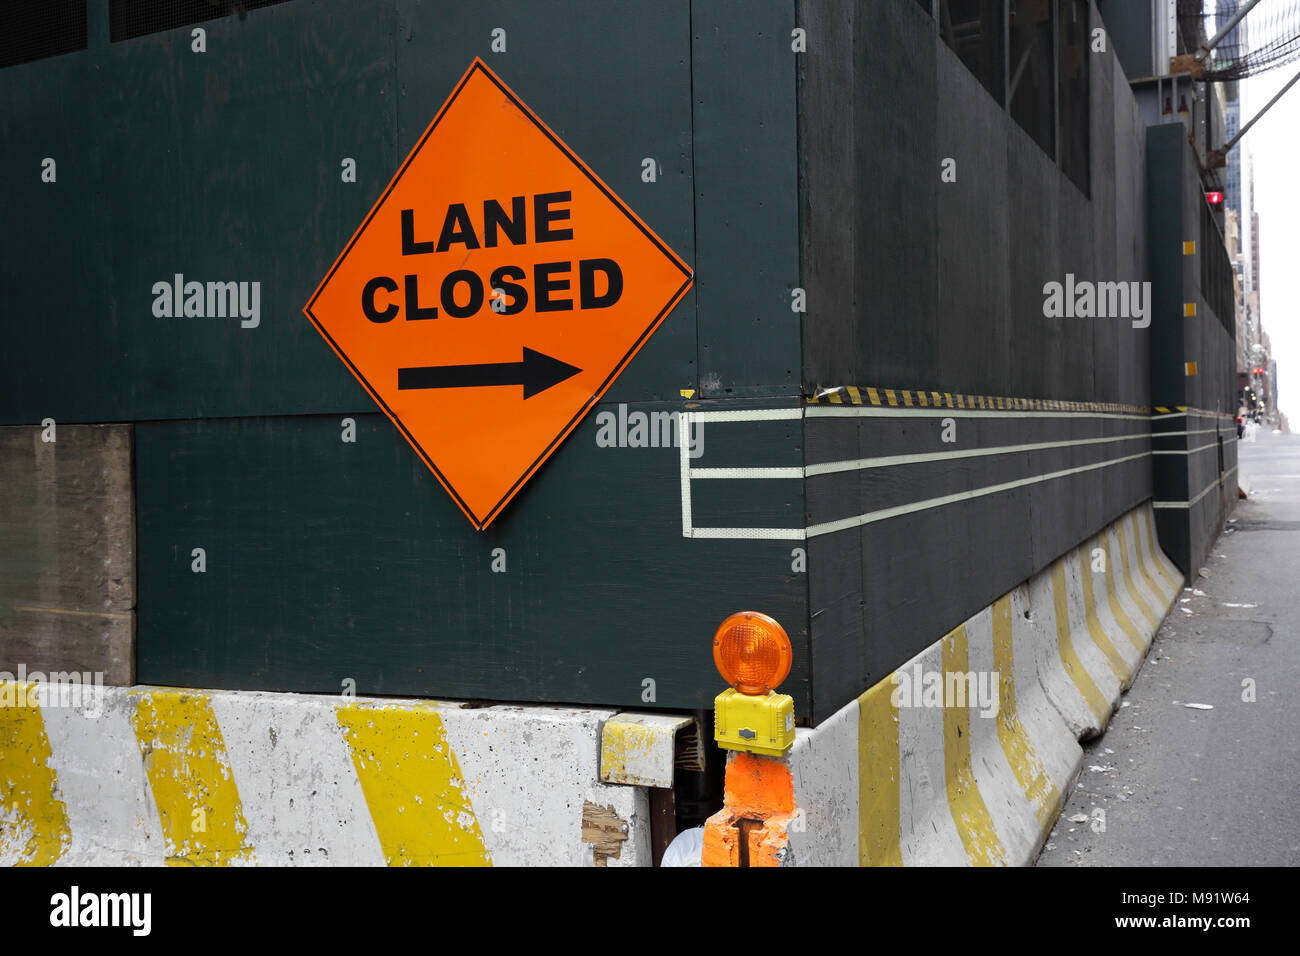 Lane Closed traffic sign in New York, NY, USA - Stock Image